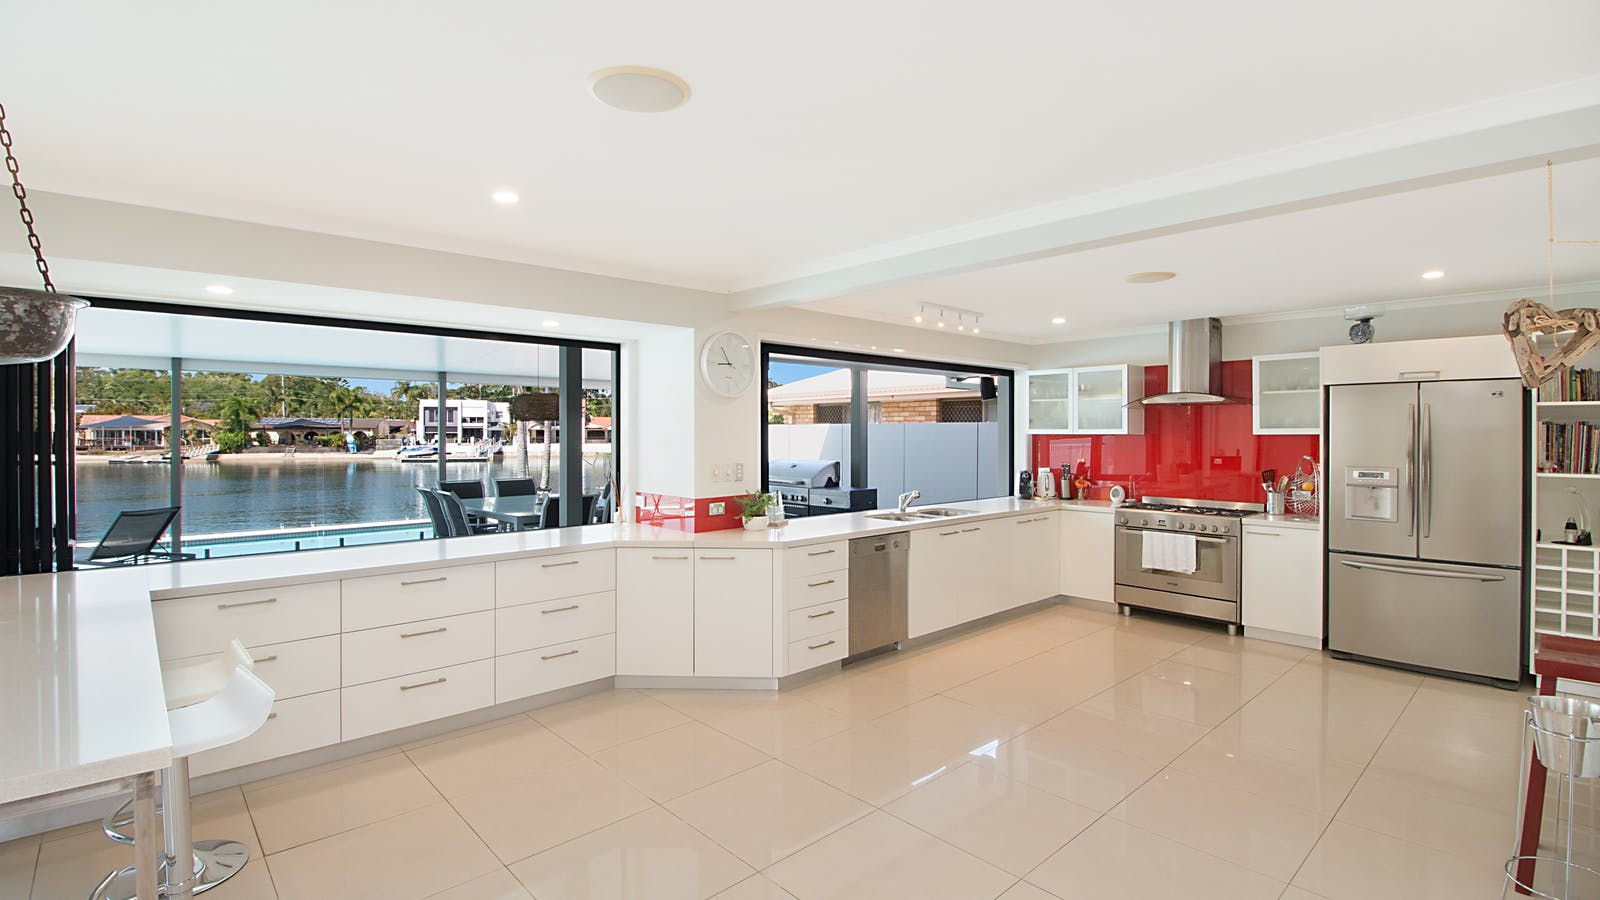 Huge, spacious kitchen with views over the water